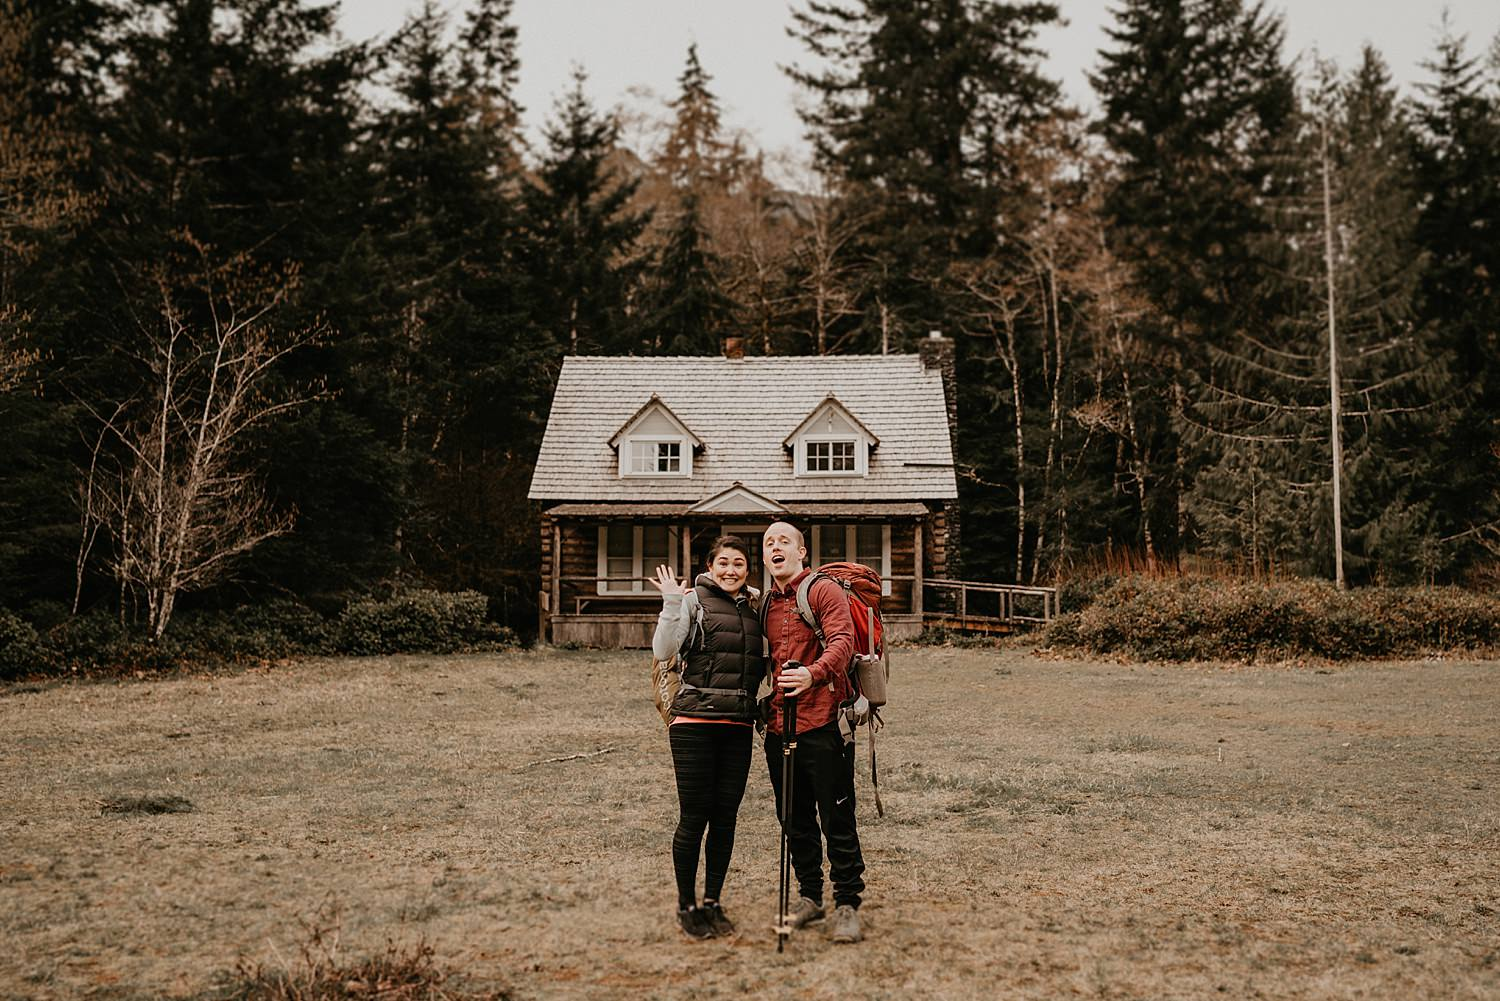 We started the morning with this photo of the couple by the Mount Storm King Ranger Station